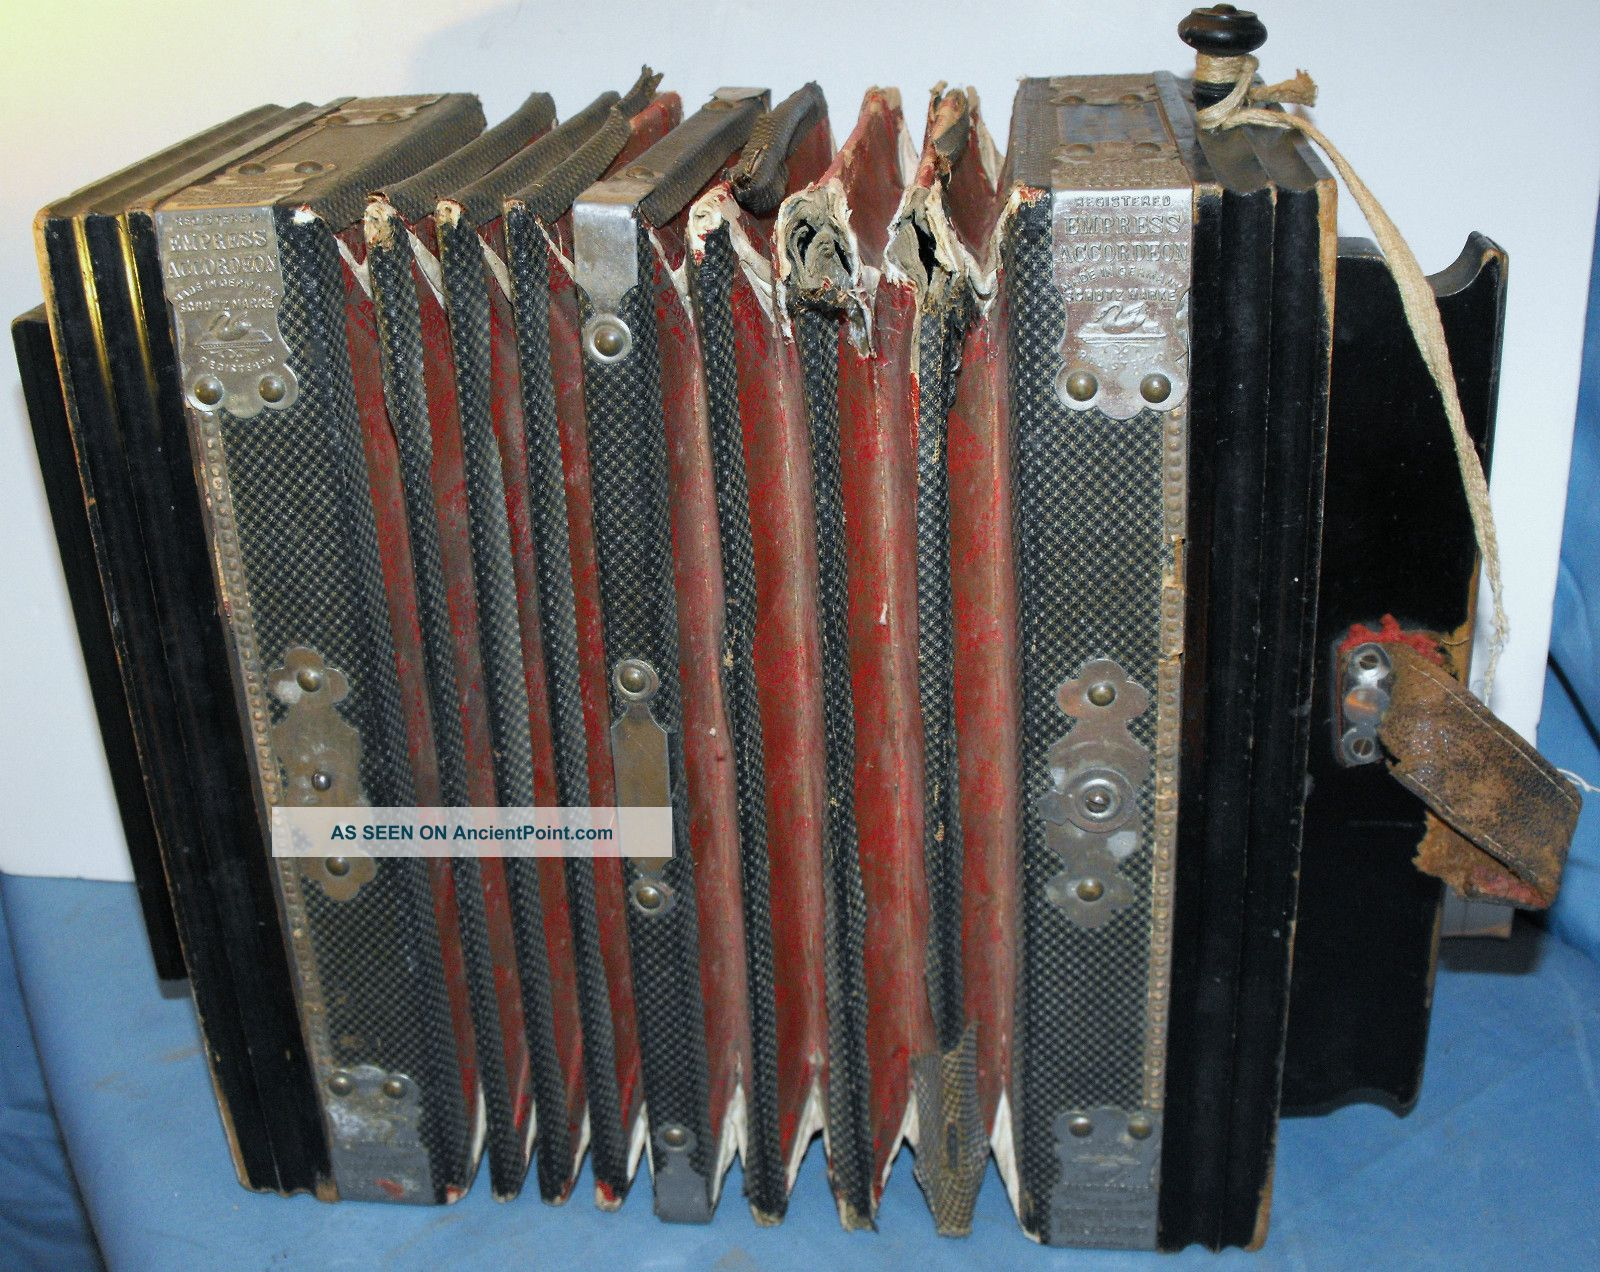 Antique Vintage Empress Accordeon Accordion For Restoration Schutzmarke Germany. Other photo